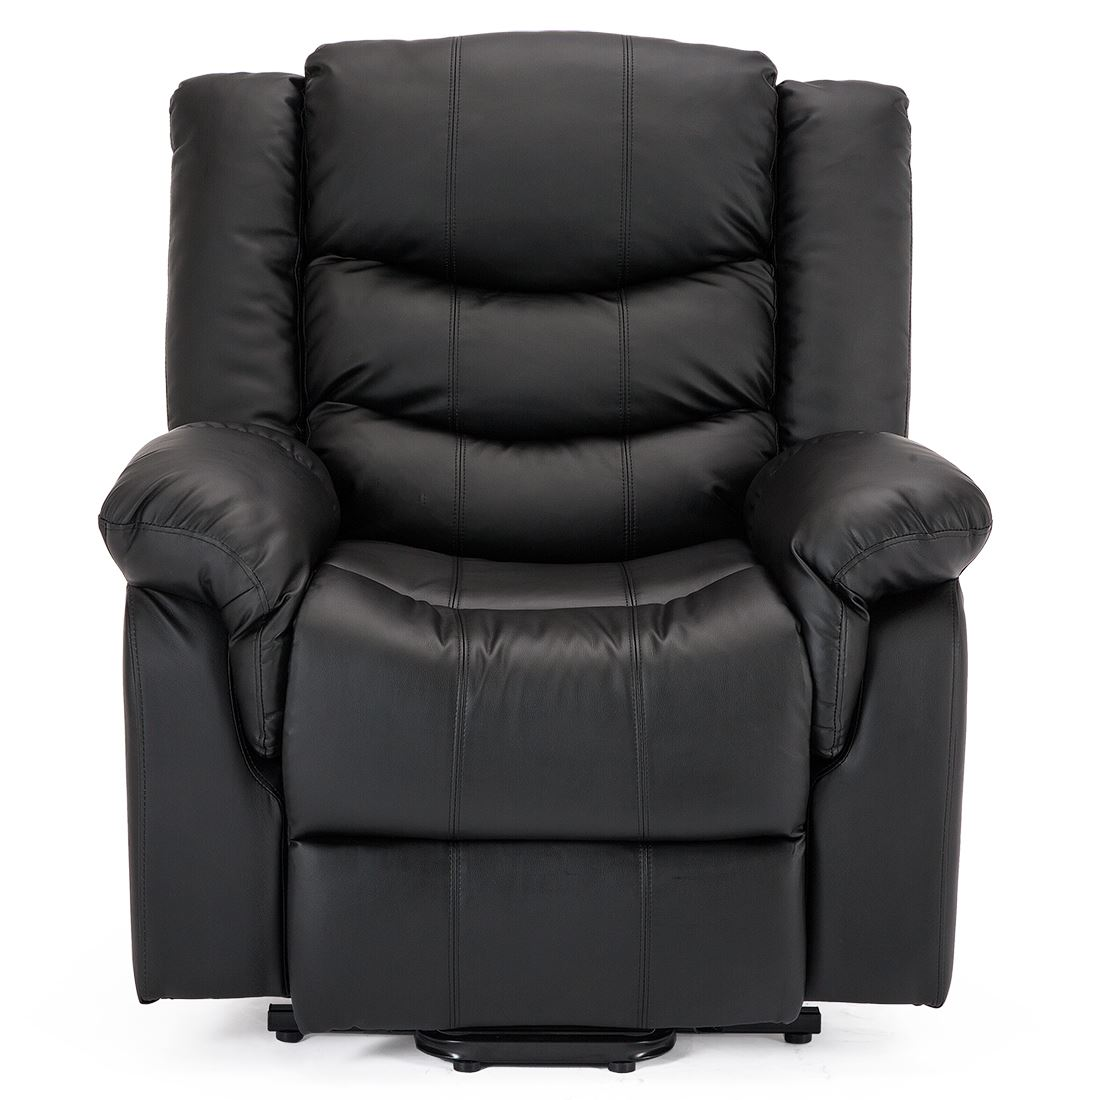 SEATTLE-ELECTRIC-RISE-REAL-LEATHER-RECLINER-ARMCHAIR-SOFA-HOME-LOUNGE-CHAIR thumbnail 4